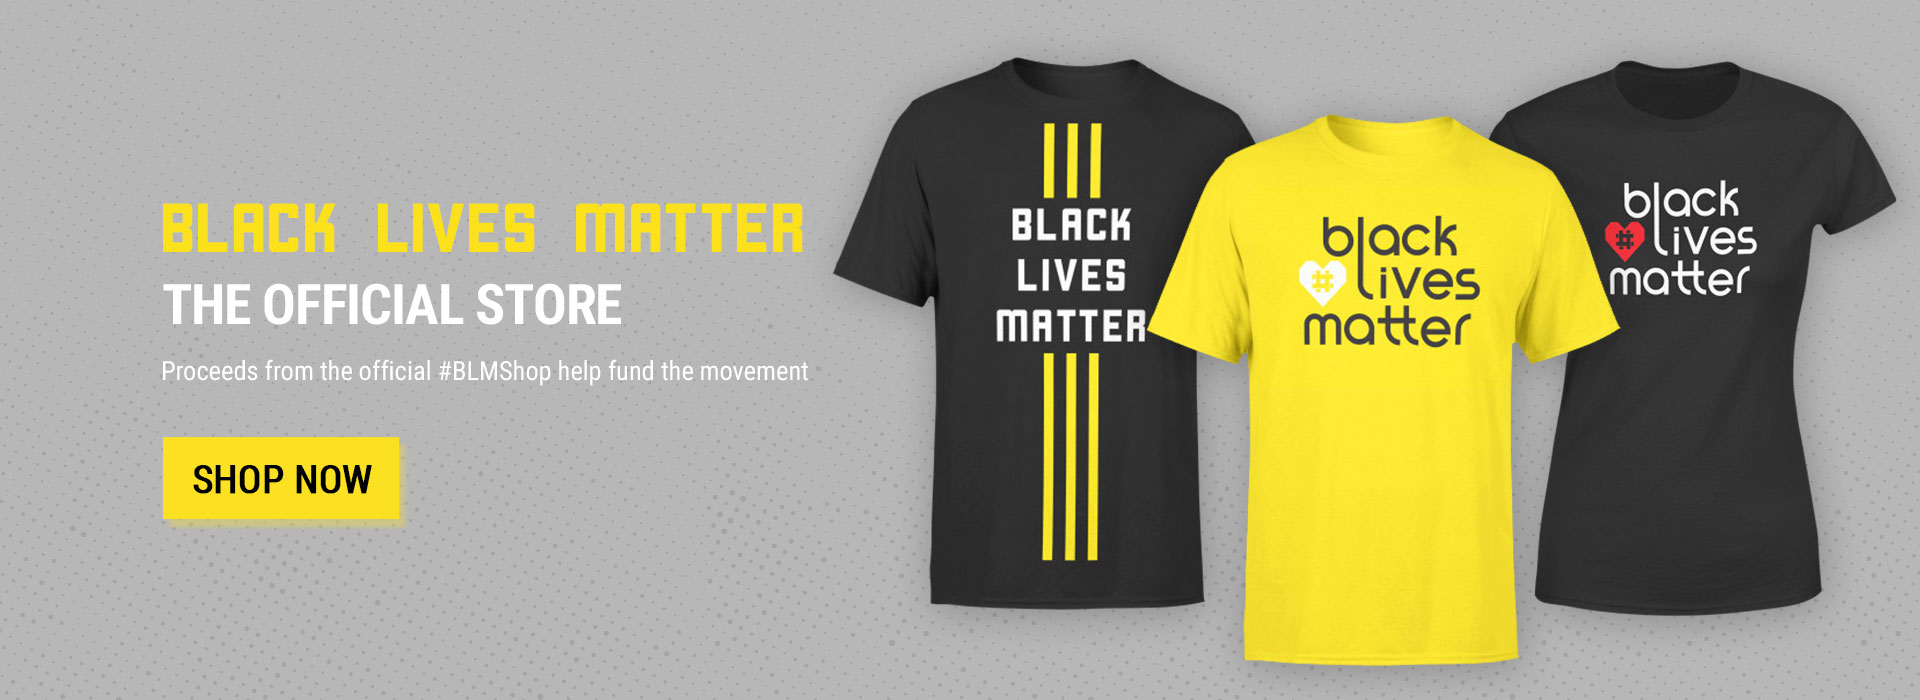 Shop Black Lives Matter